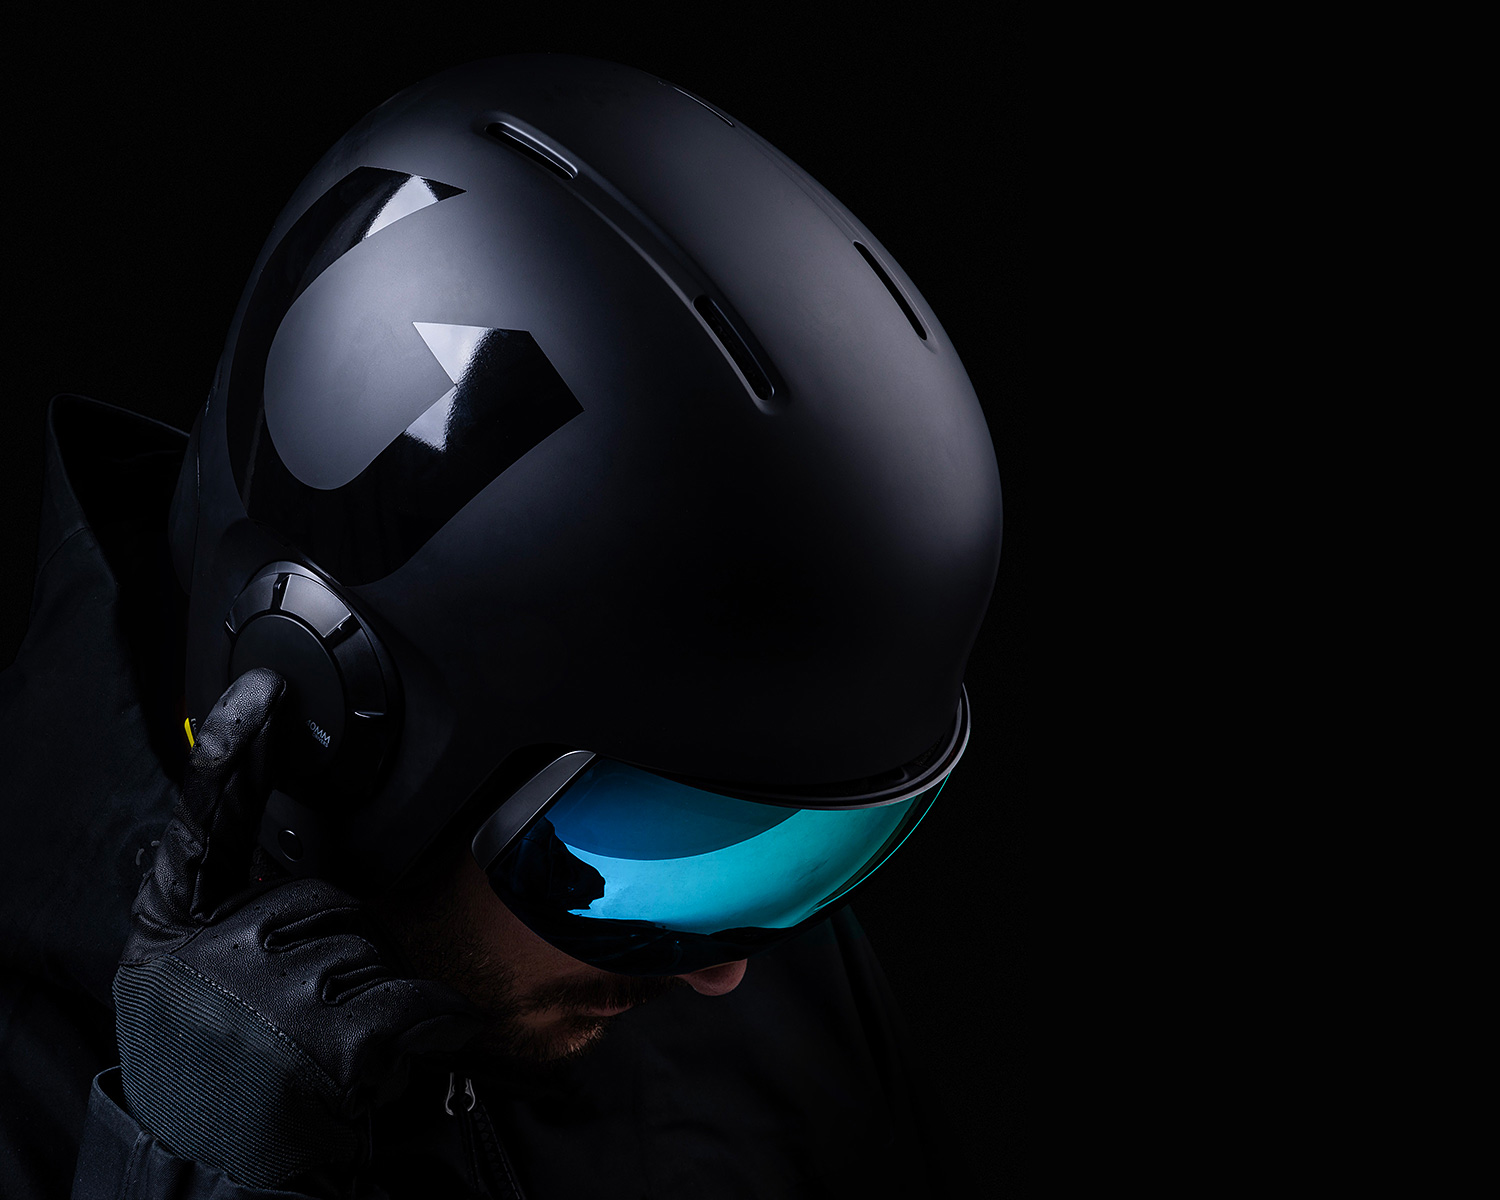 Safe & Sound: The Unit 1 Helmet at werd.com